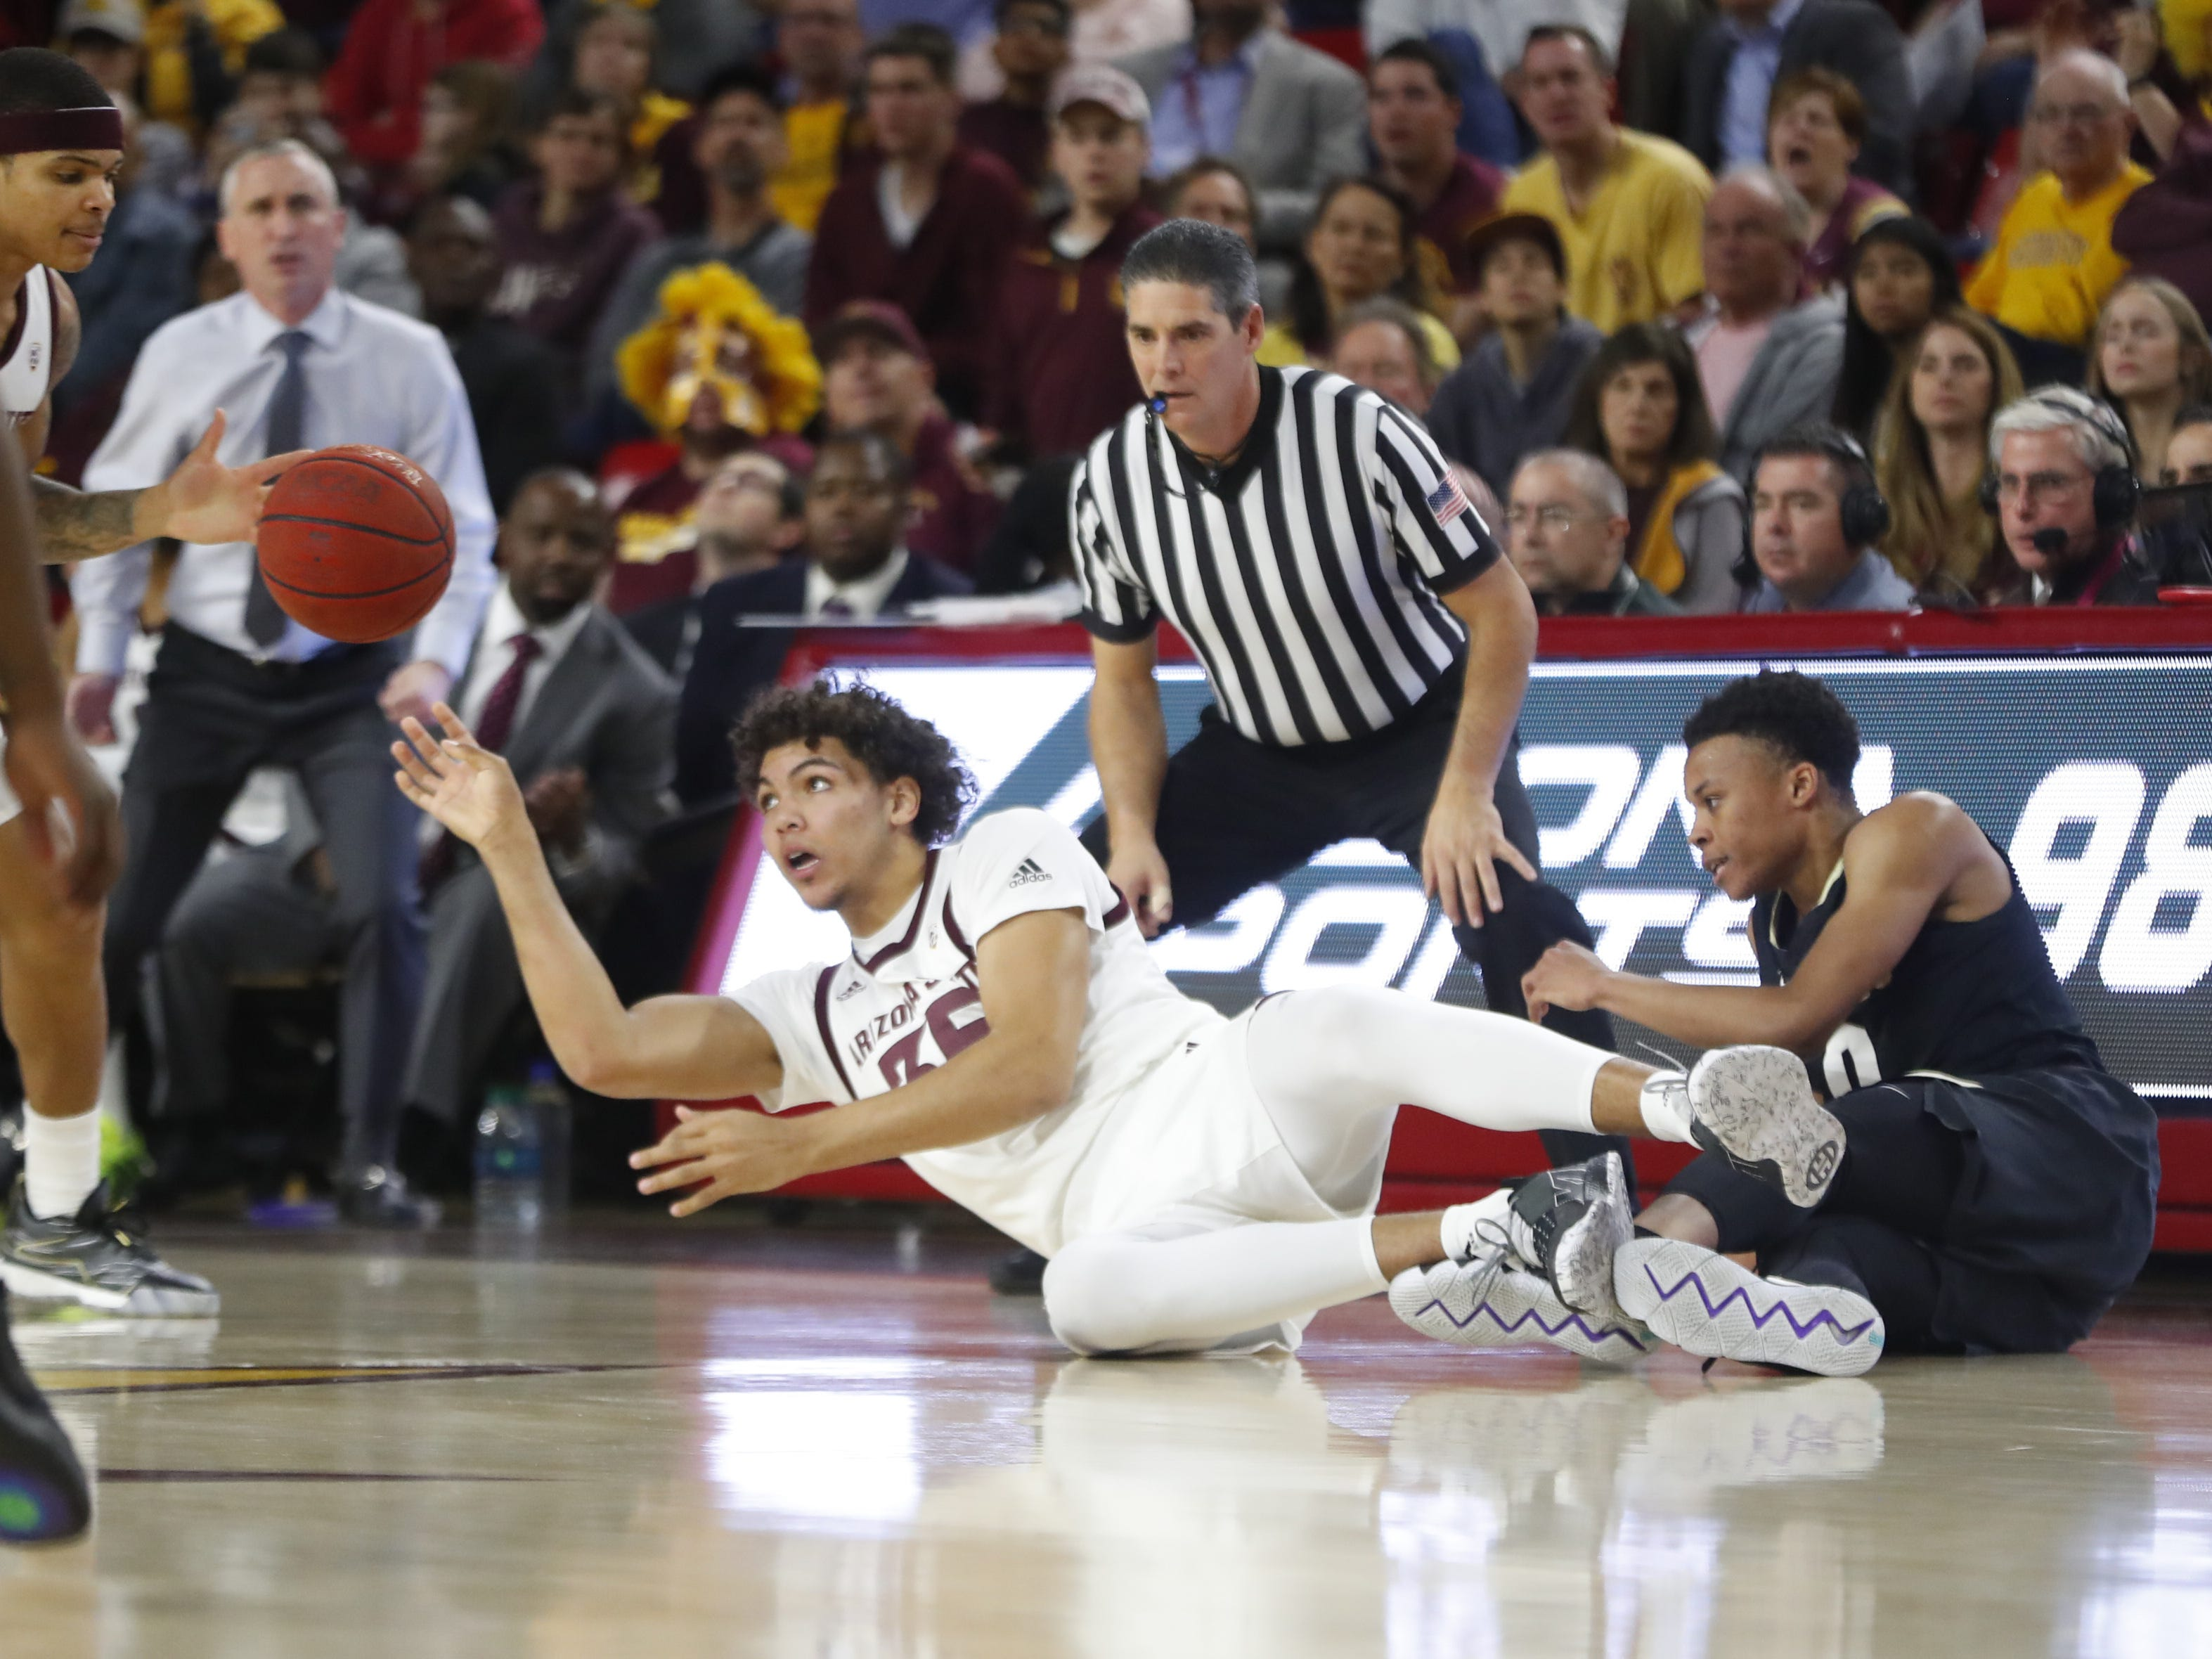 ASU's Taeshon Cherry (35) passes from the floor after grabbing a steal against Colorado's Shane Gatling (0) during the first half at Wells Fargo Arena in Tempe, Ariz. on January 5, 2019.